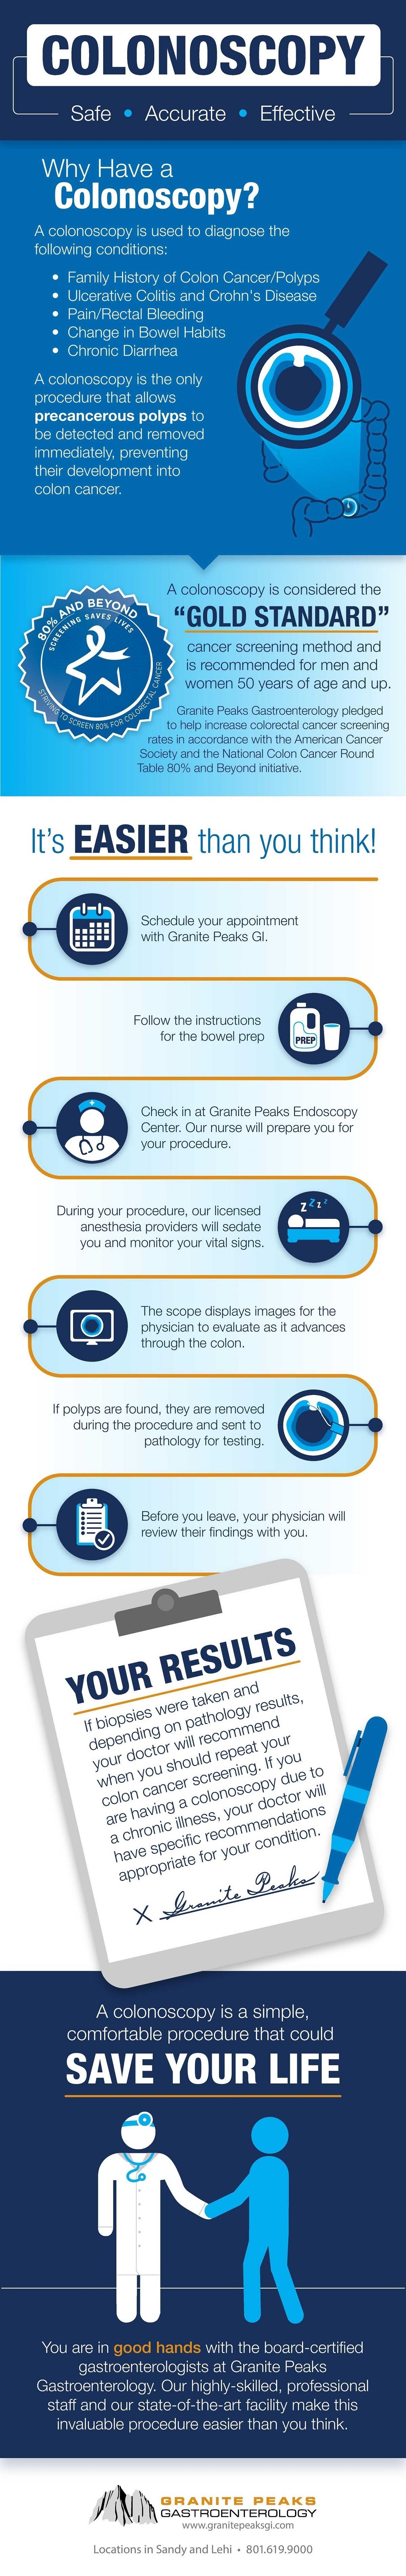 Colonoscopy Procedure Description #infographic